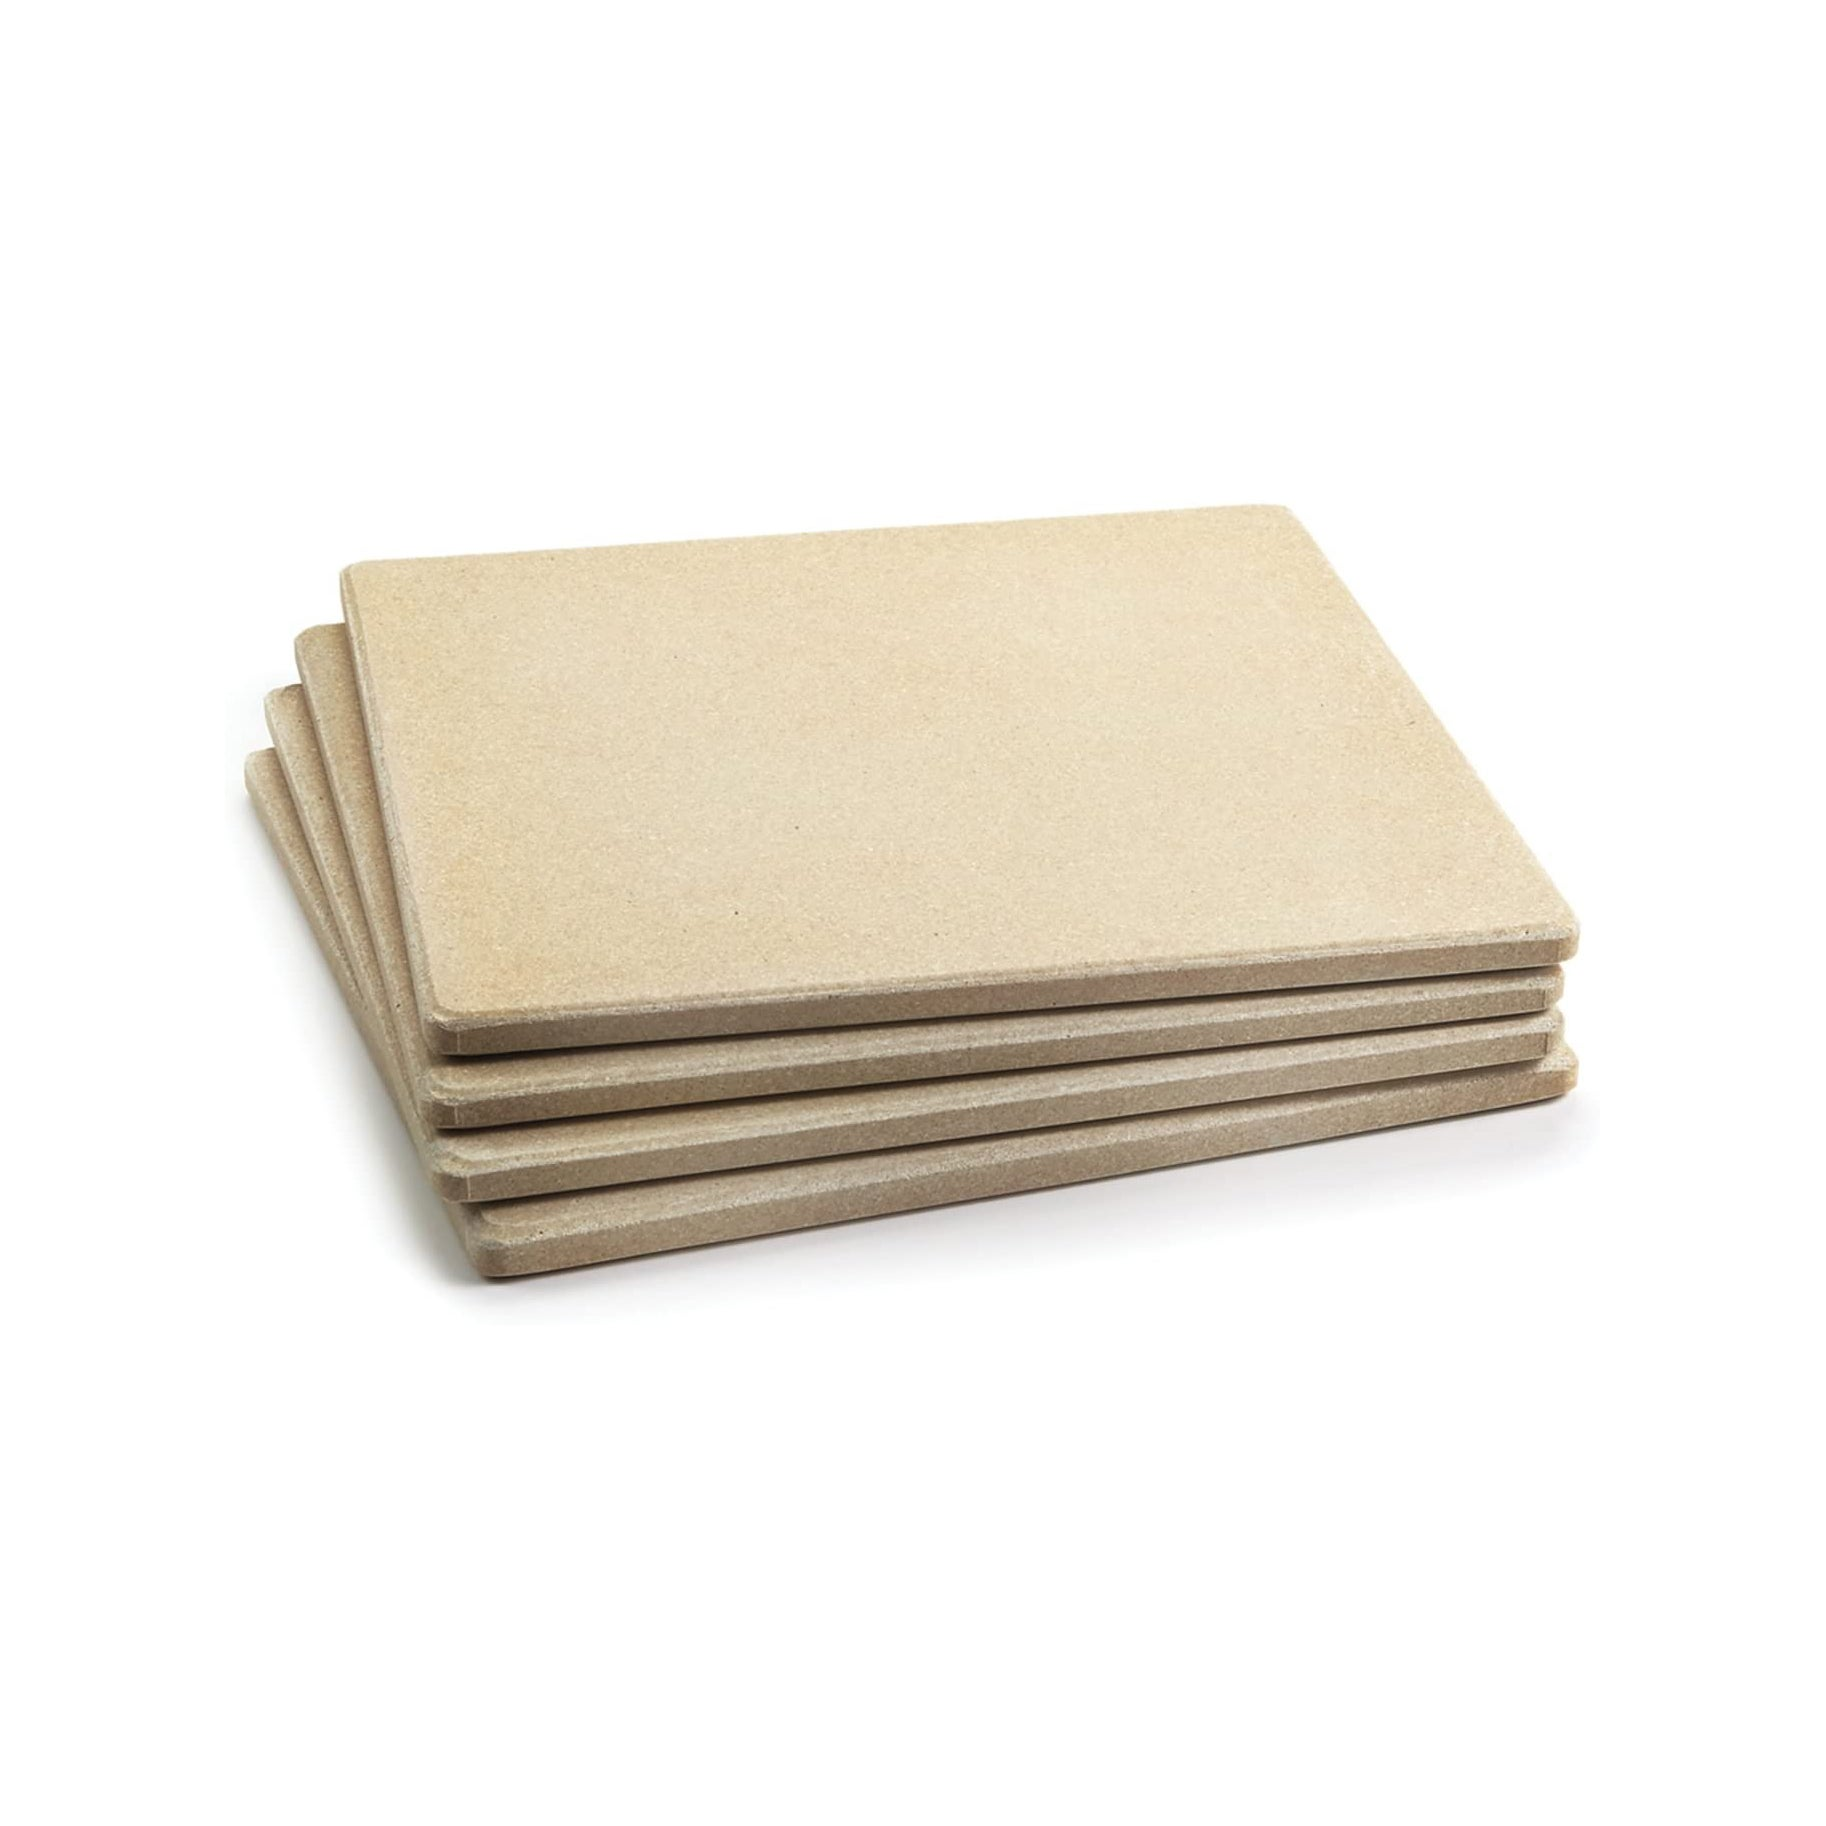 The Best Pizza Stone Option: Set of Four Ceramic Tiles by Outset